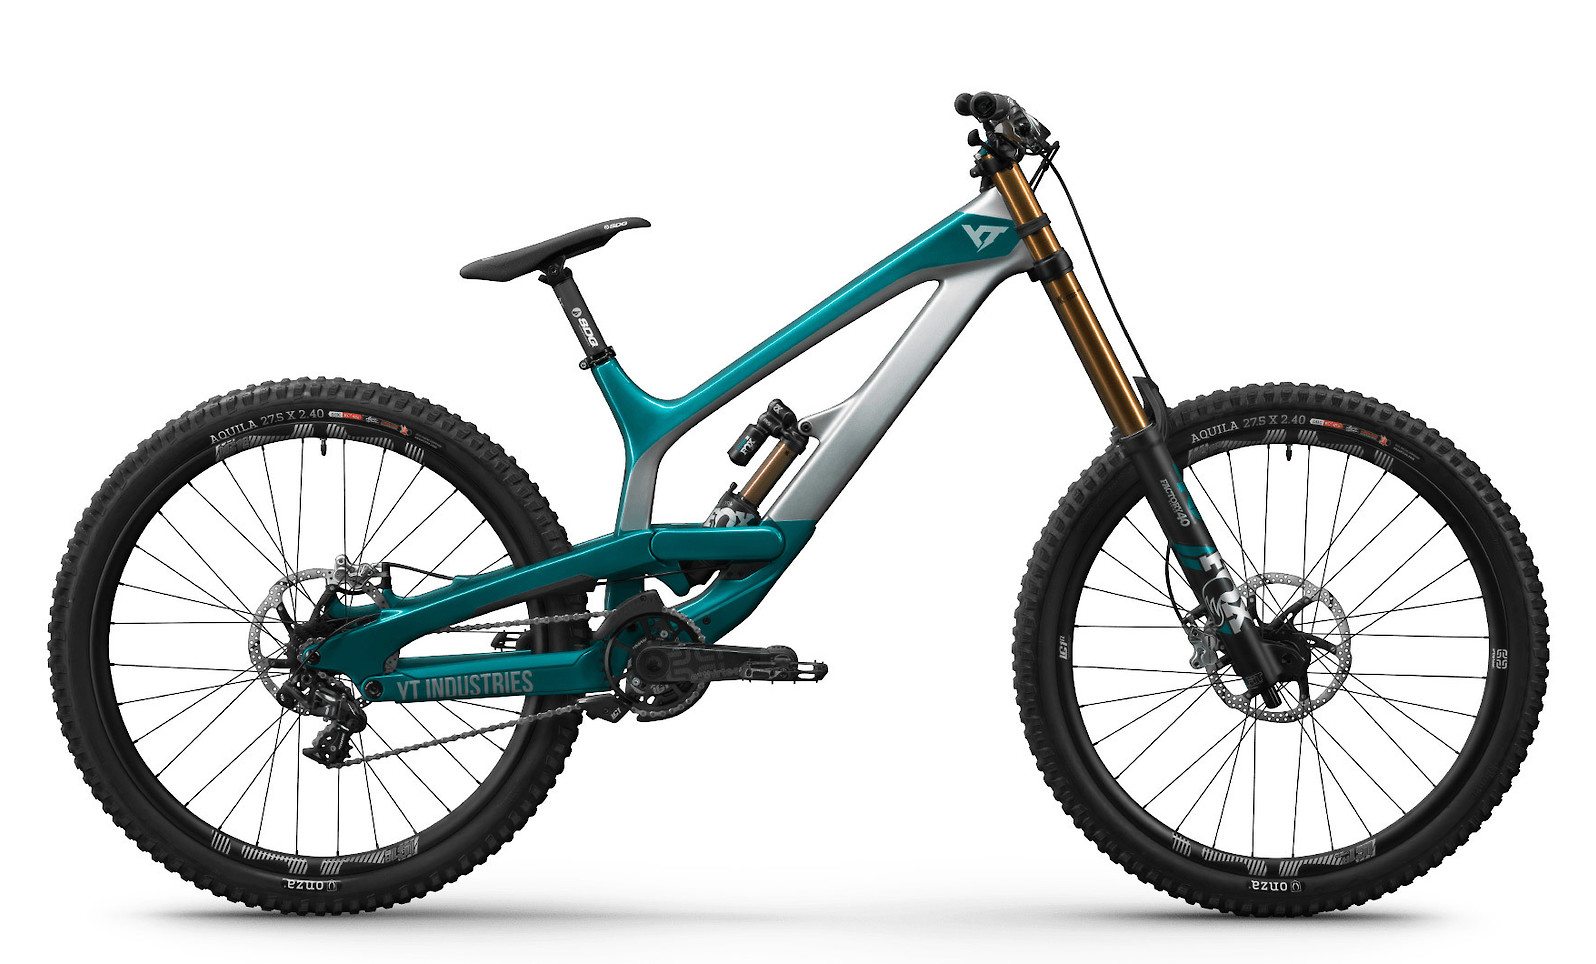 662b4628903 2019 YT Tues 27 CF Pro Race Bike - Reviews, Comparisons, Specs ...